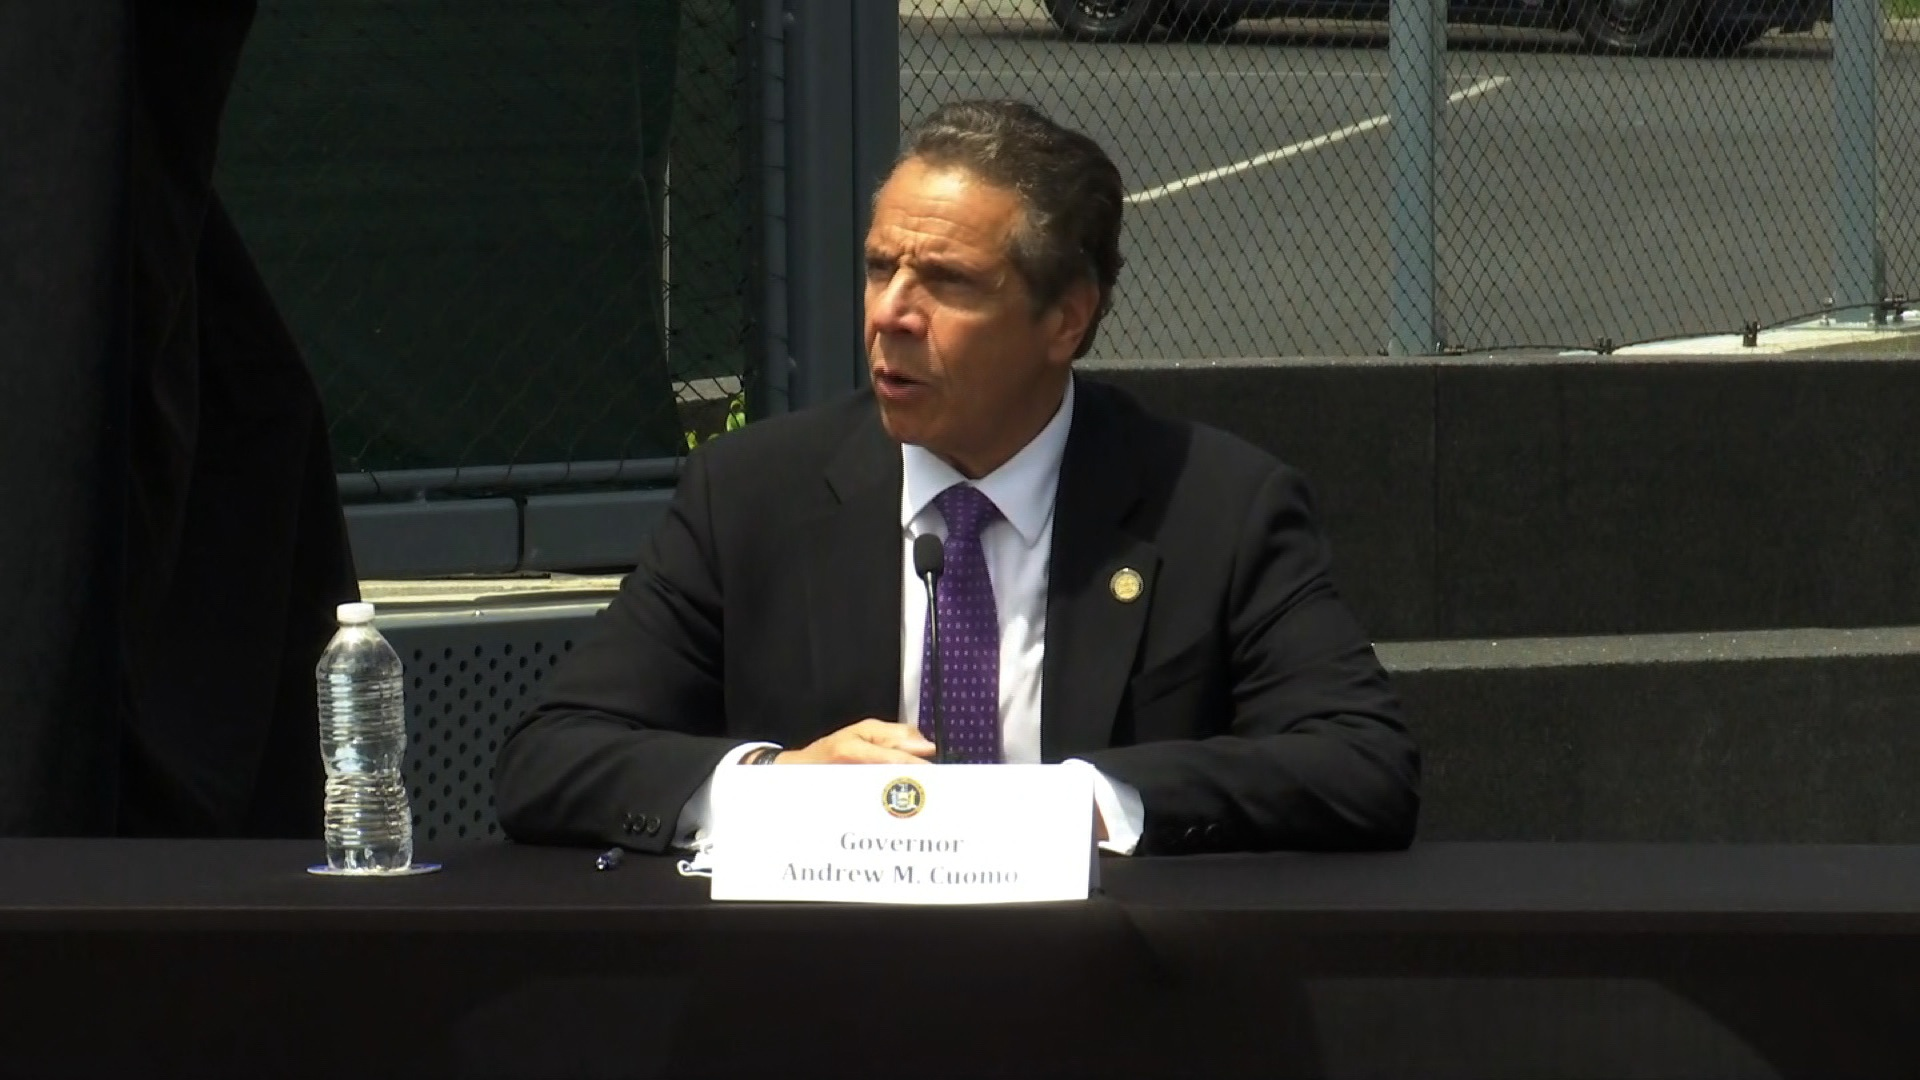 New York Gov. Andrew Cuomo speaks during a press conference in Tarrytown, New York, on June 15.